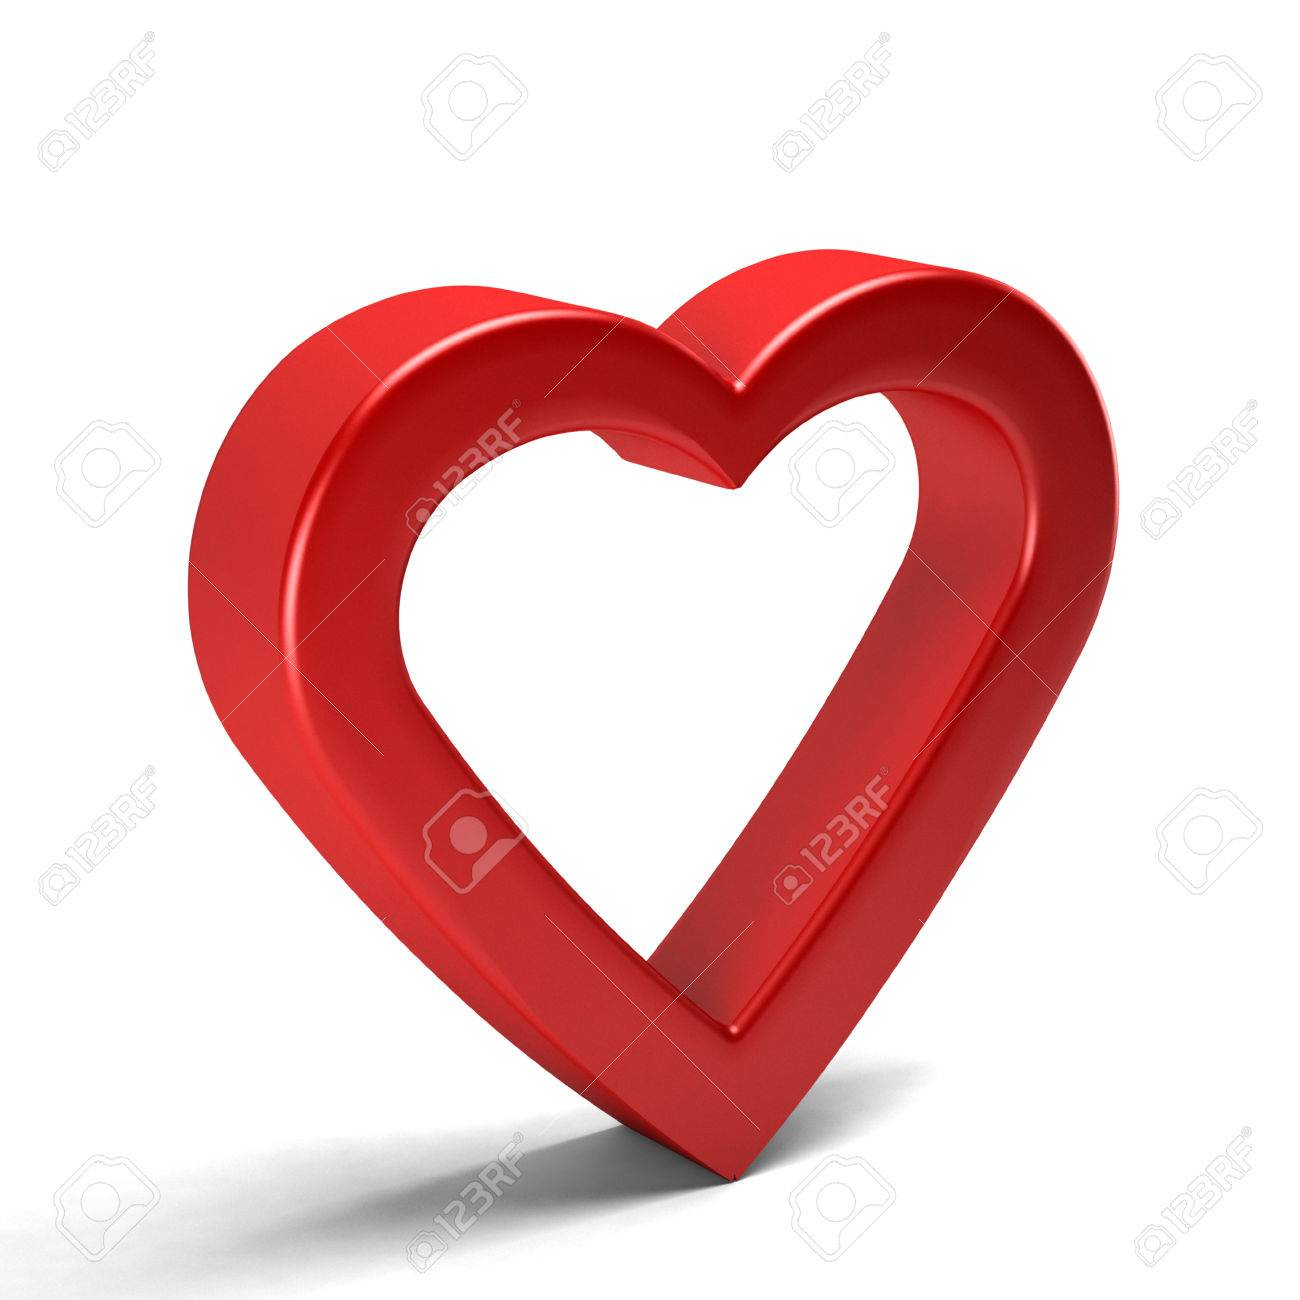 Open heart icon stock photo picture and royalty free image image open heart icon stock photo 48428907 buycottarizona Gallery